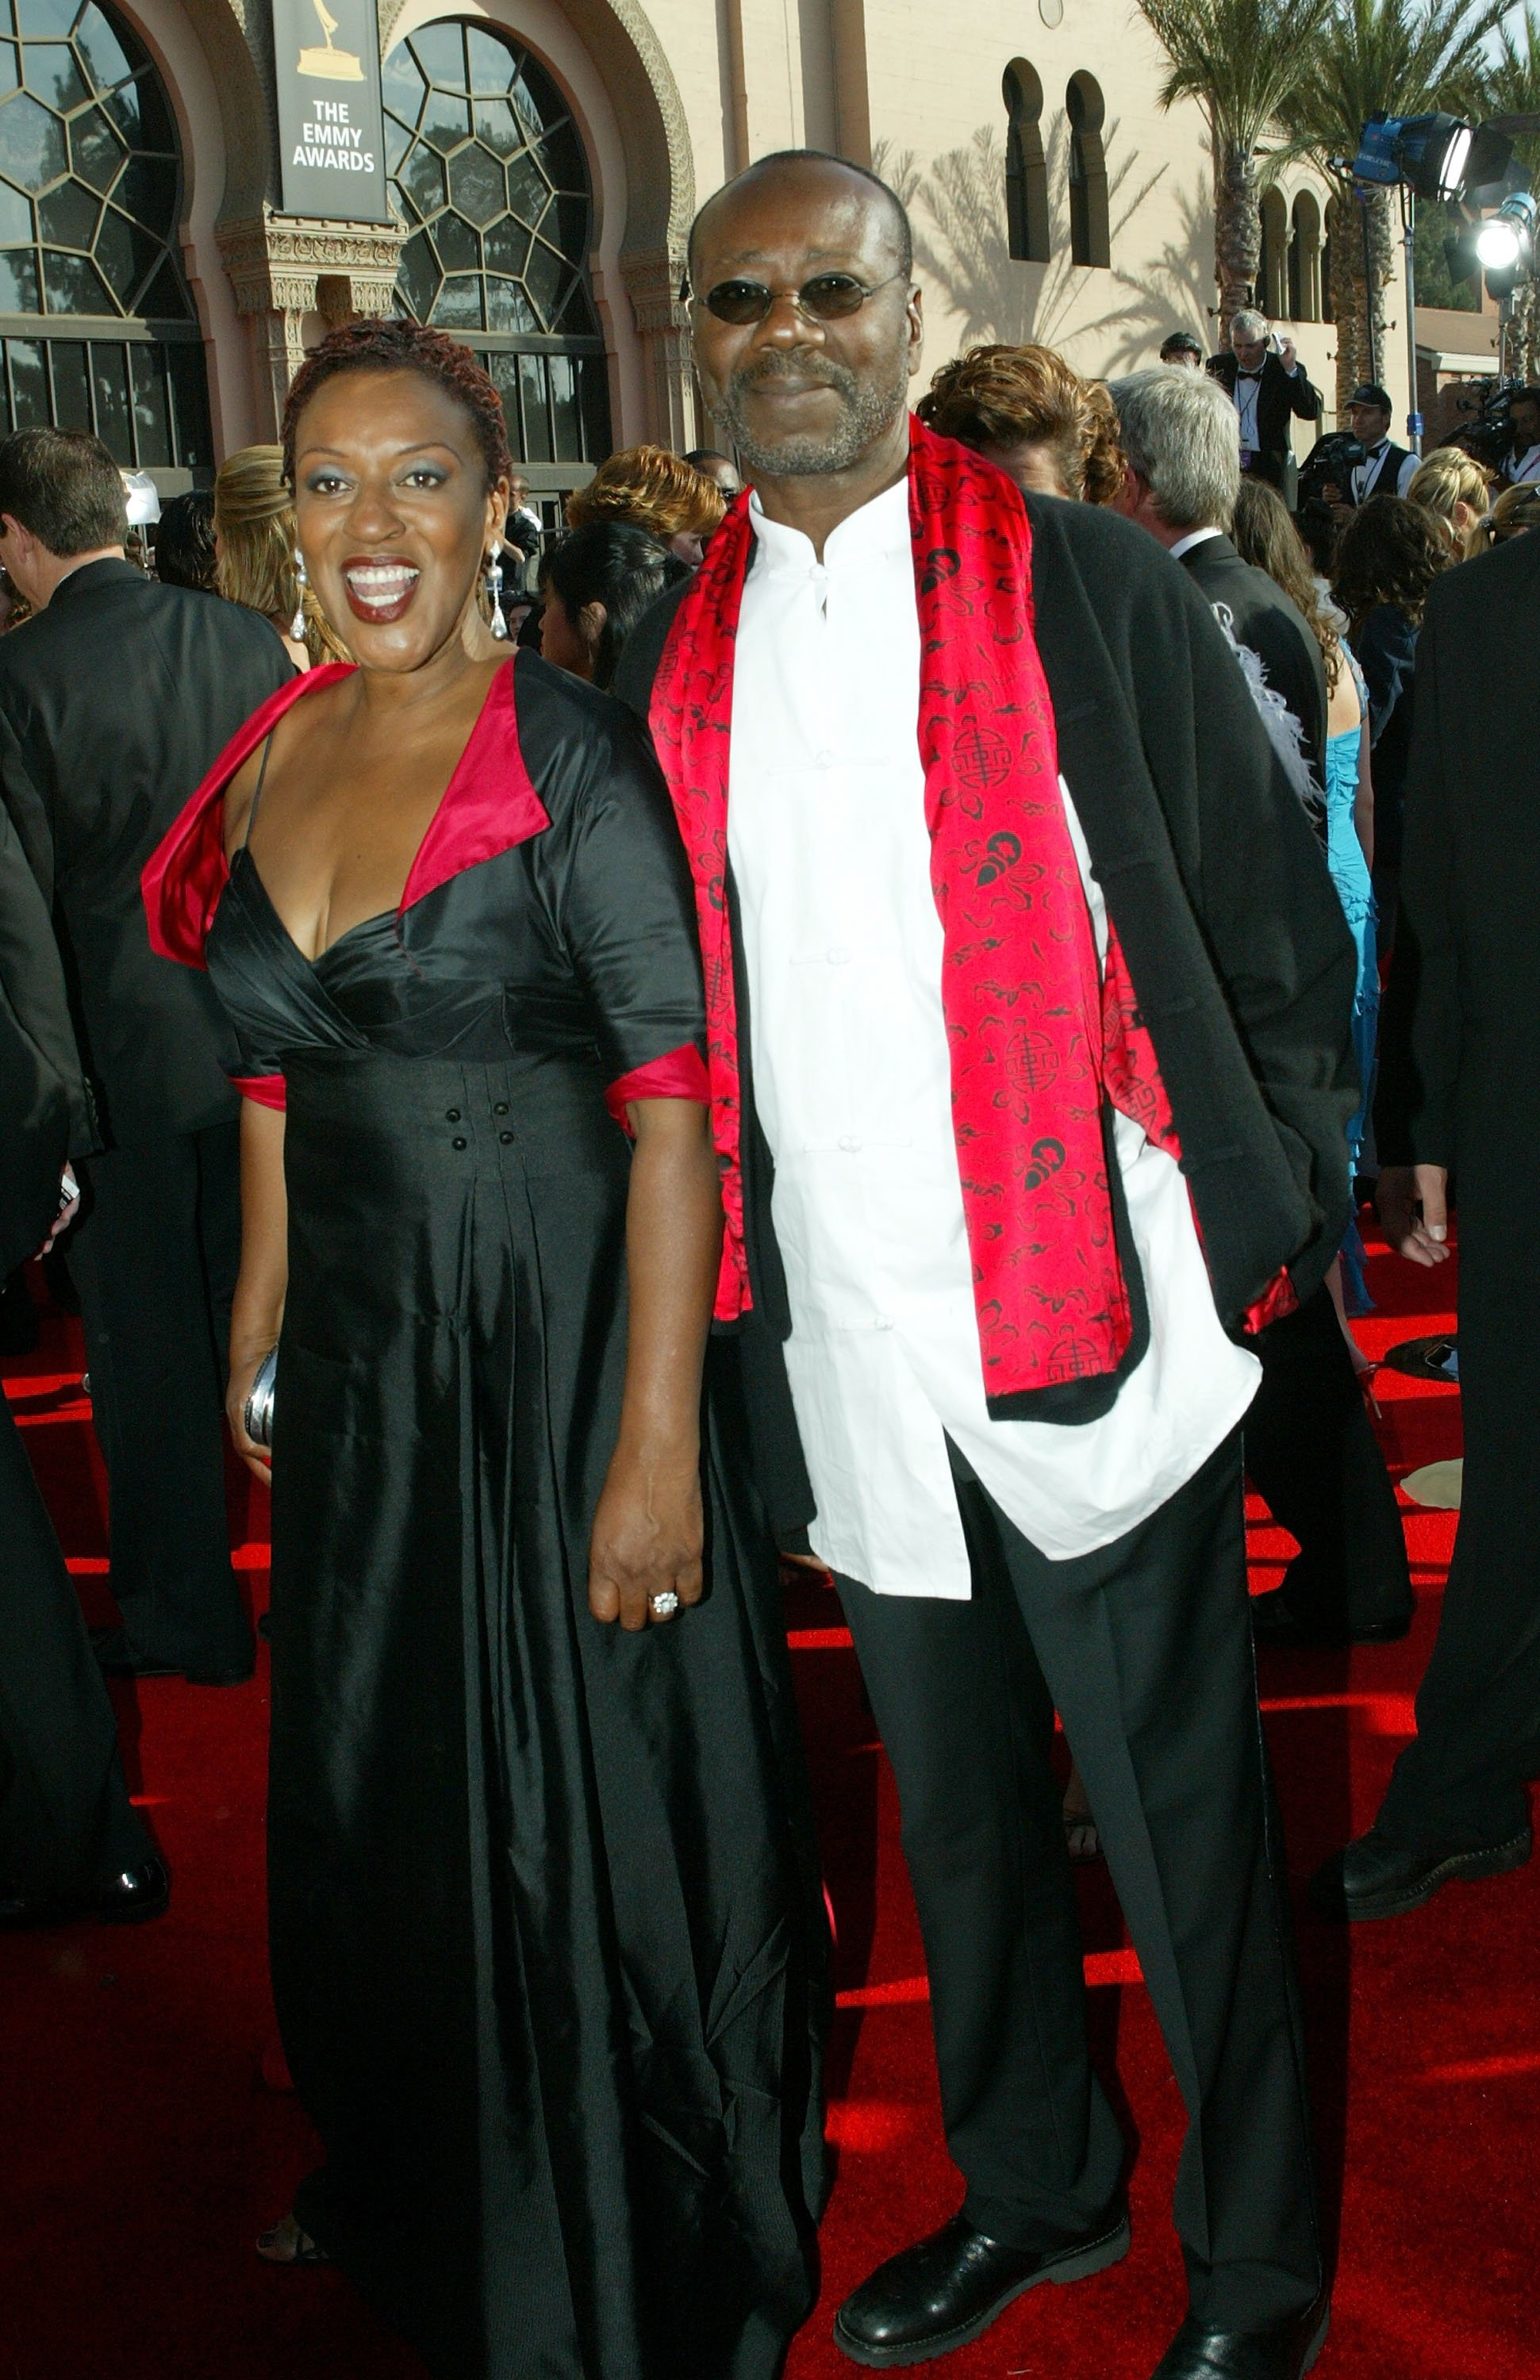 Actress CCH Pounder (left) and her husband Boubacar Kone arrive at the 57th Annual Emmy Awards held at the Shrine Auditorium on September 18, 2005 | Photo: Getty Images